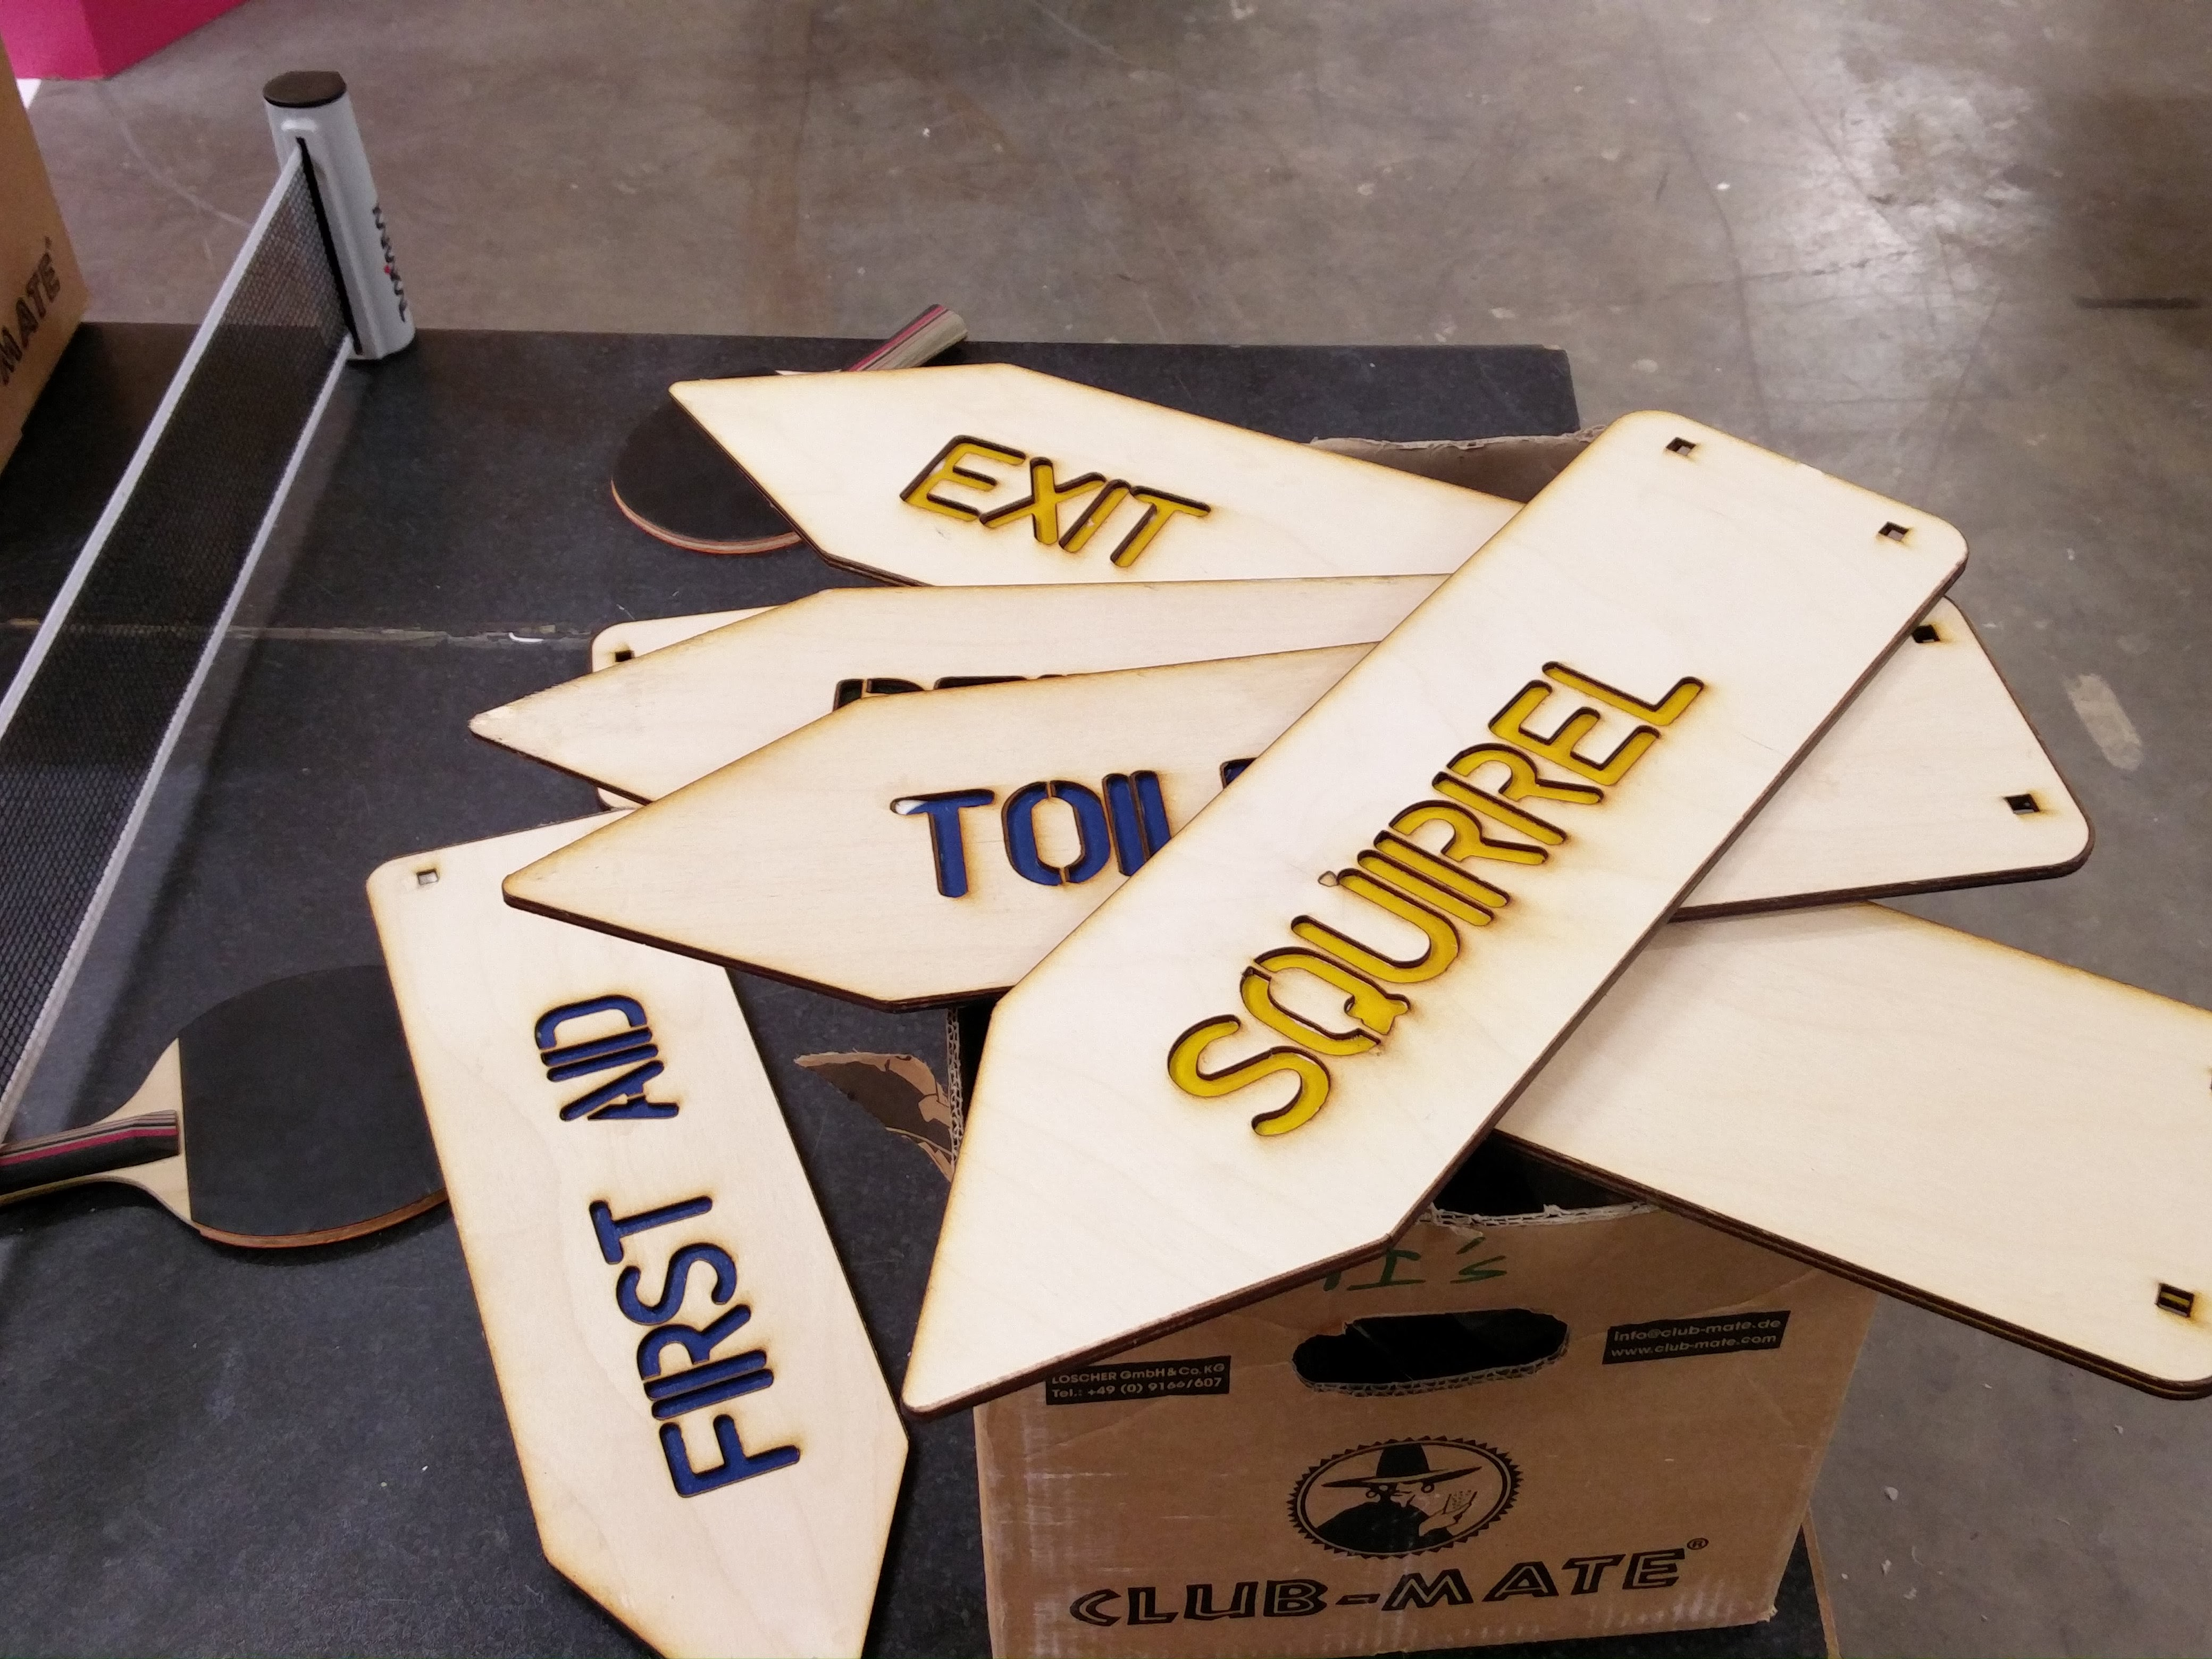 Project: Laser Cut Signs